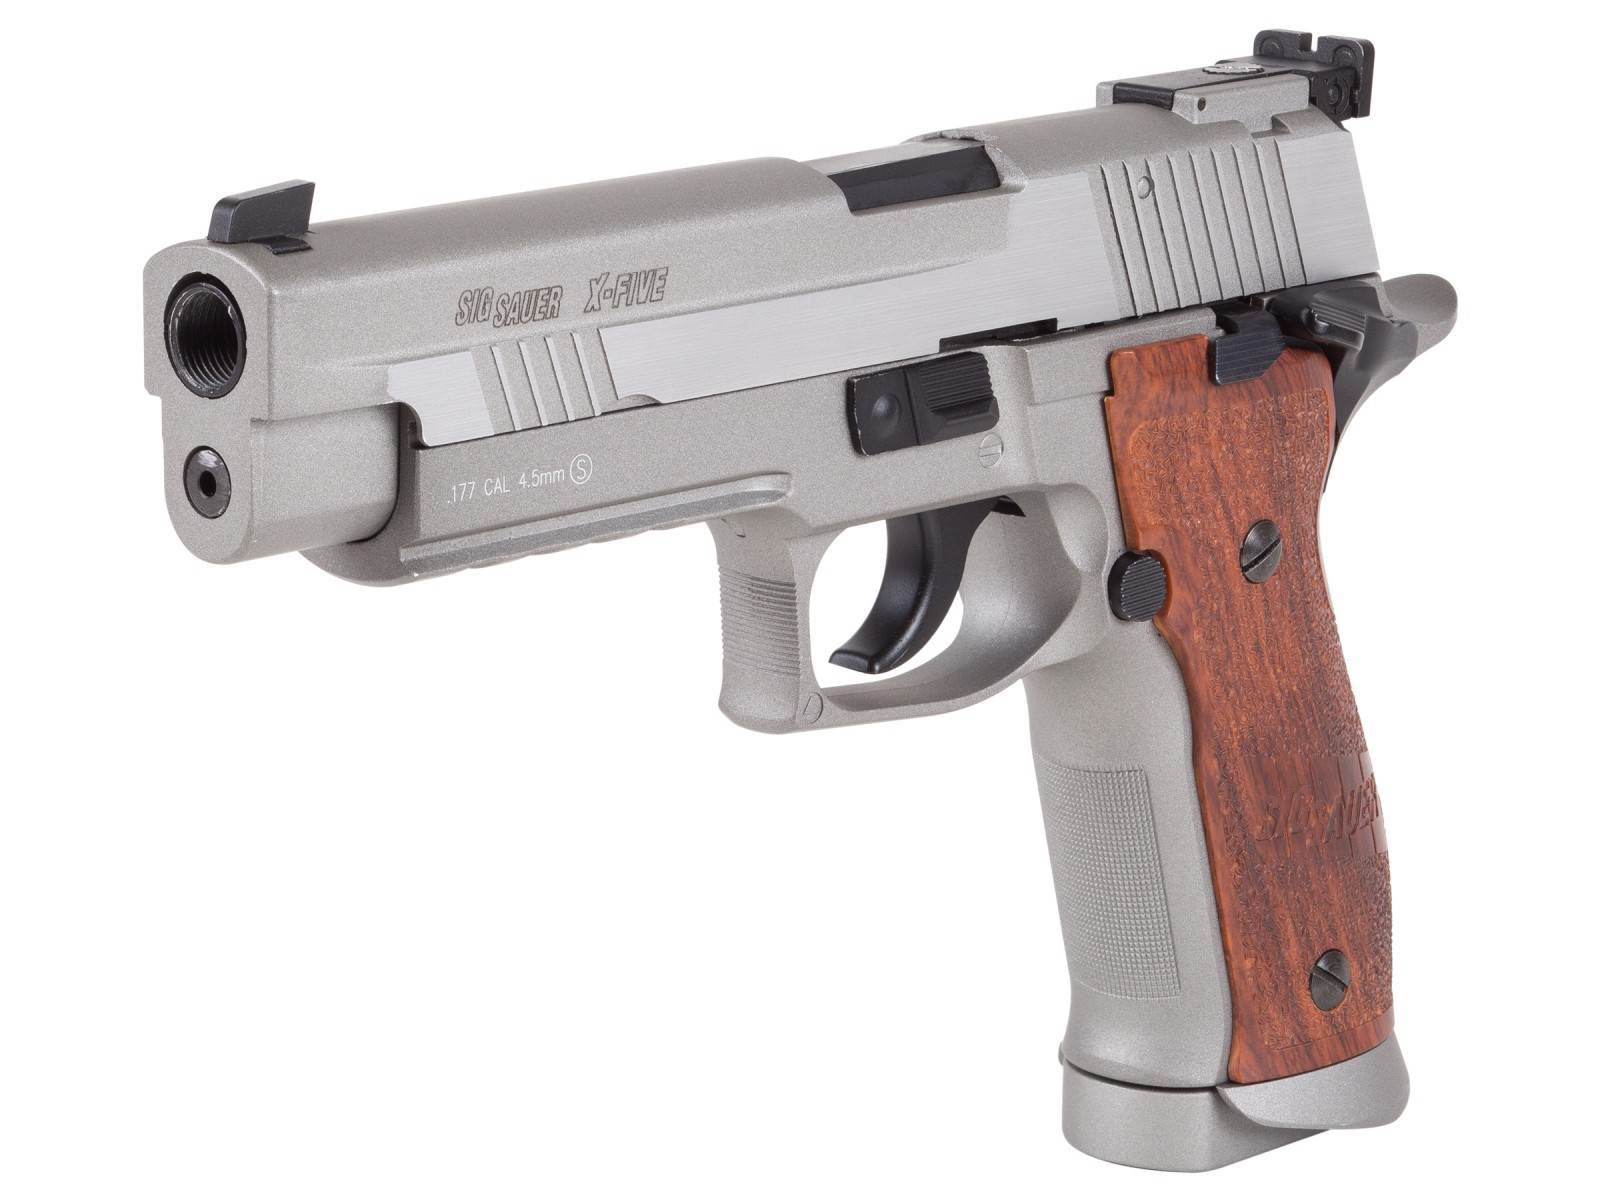 SIG Sauer P226 X-Five .177 CO2 Pistol, Silver/Wood Grips